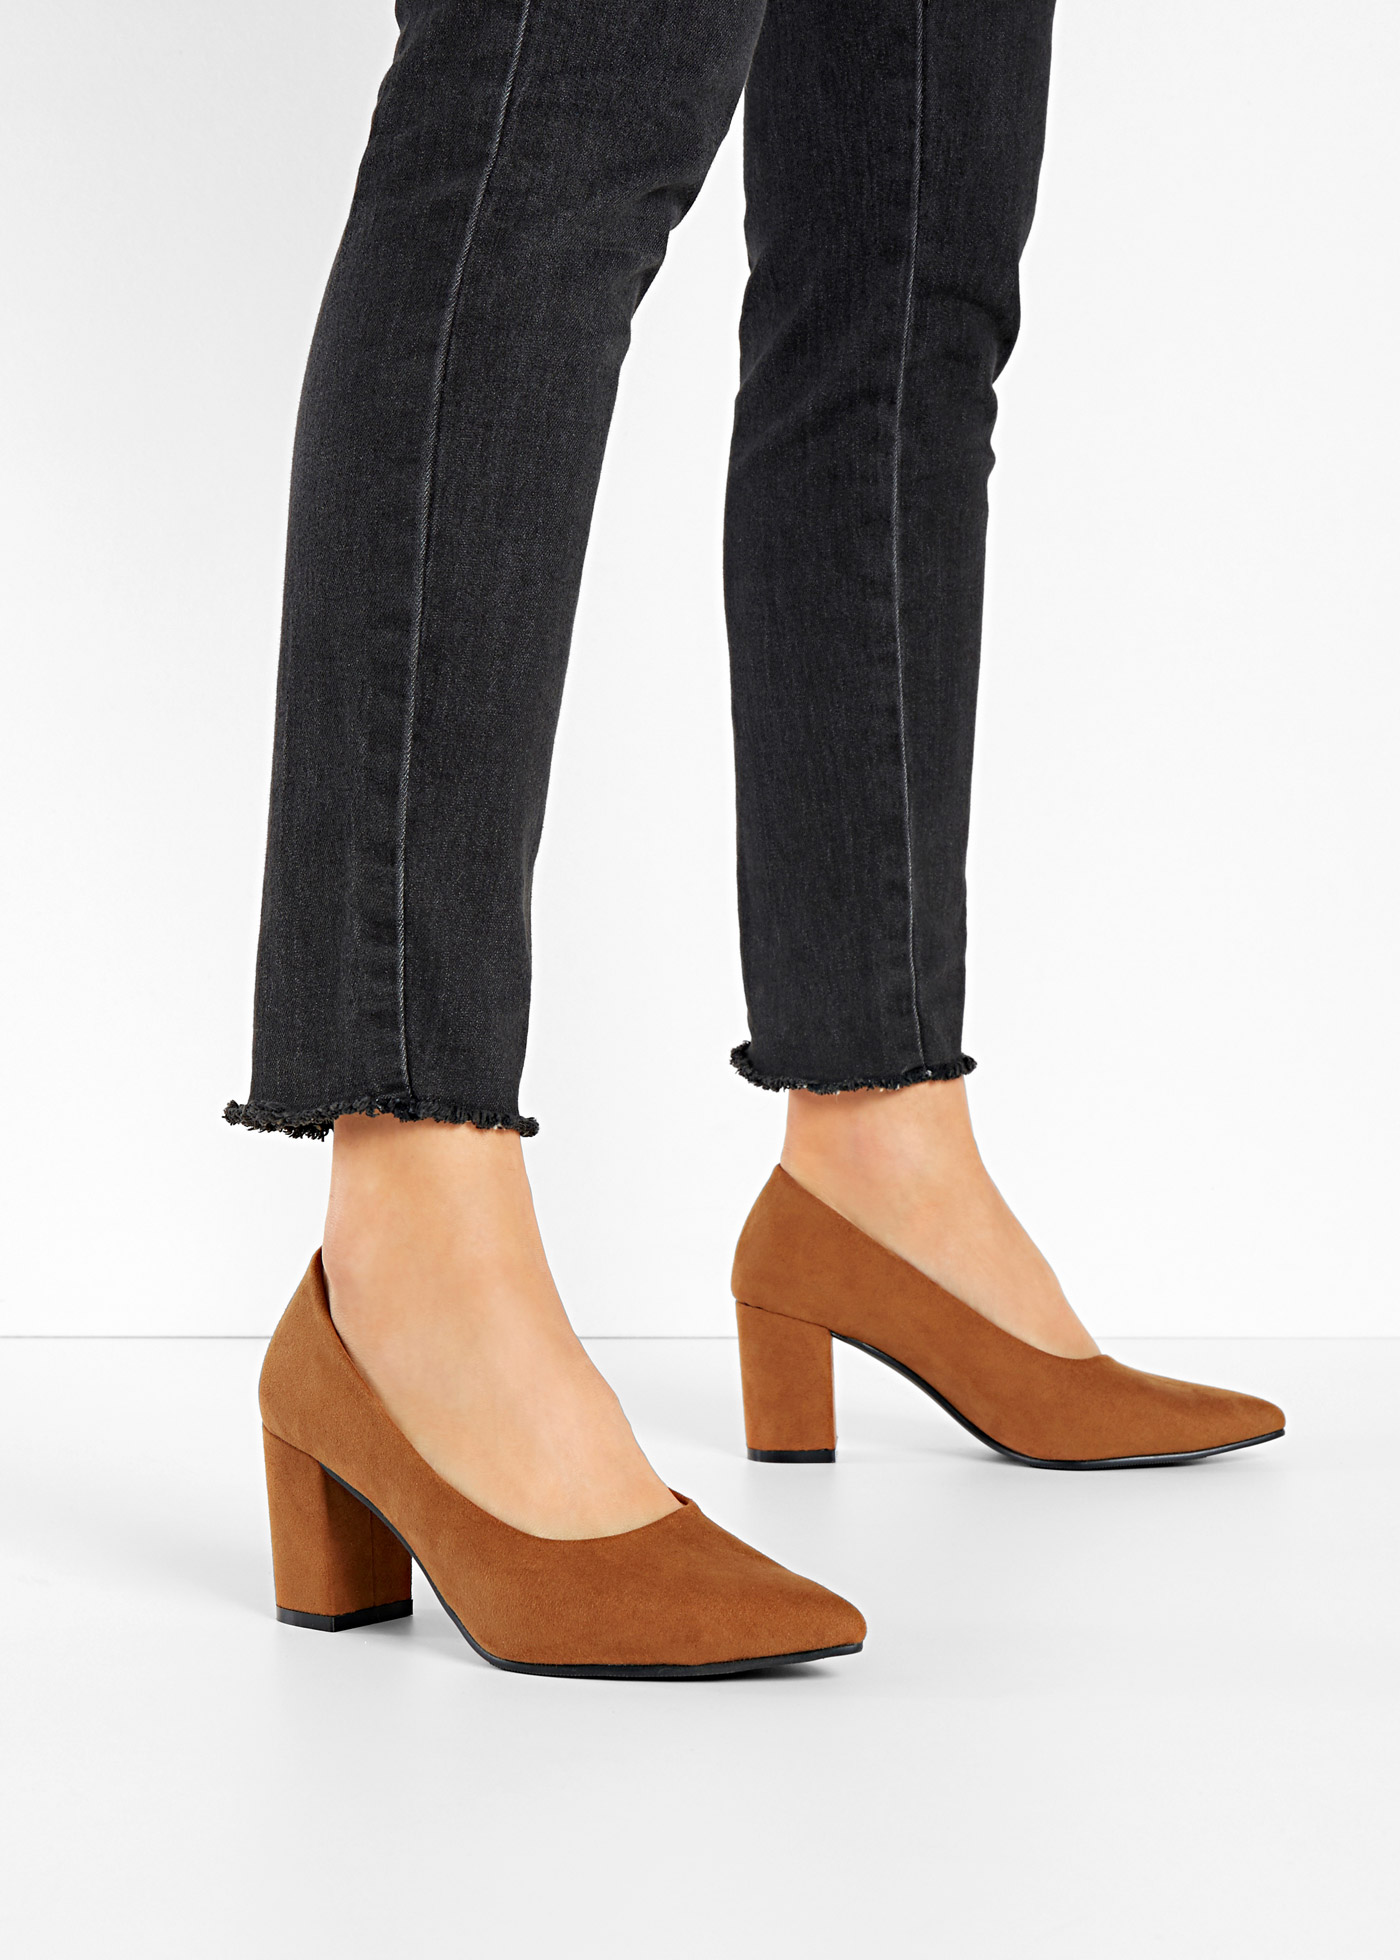 Bonprix Pumps